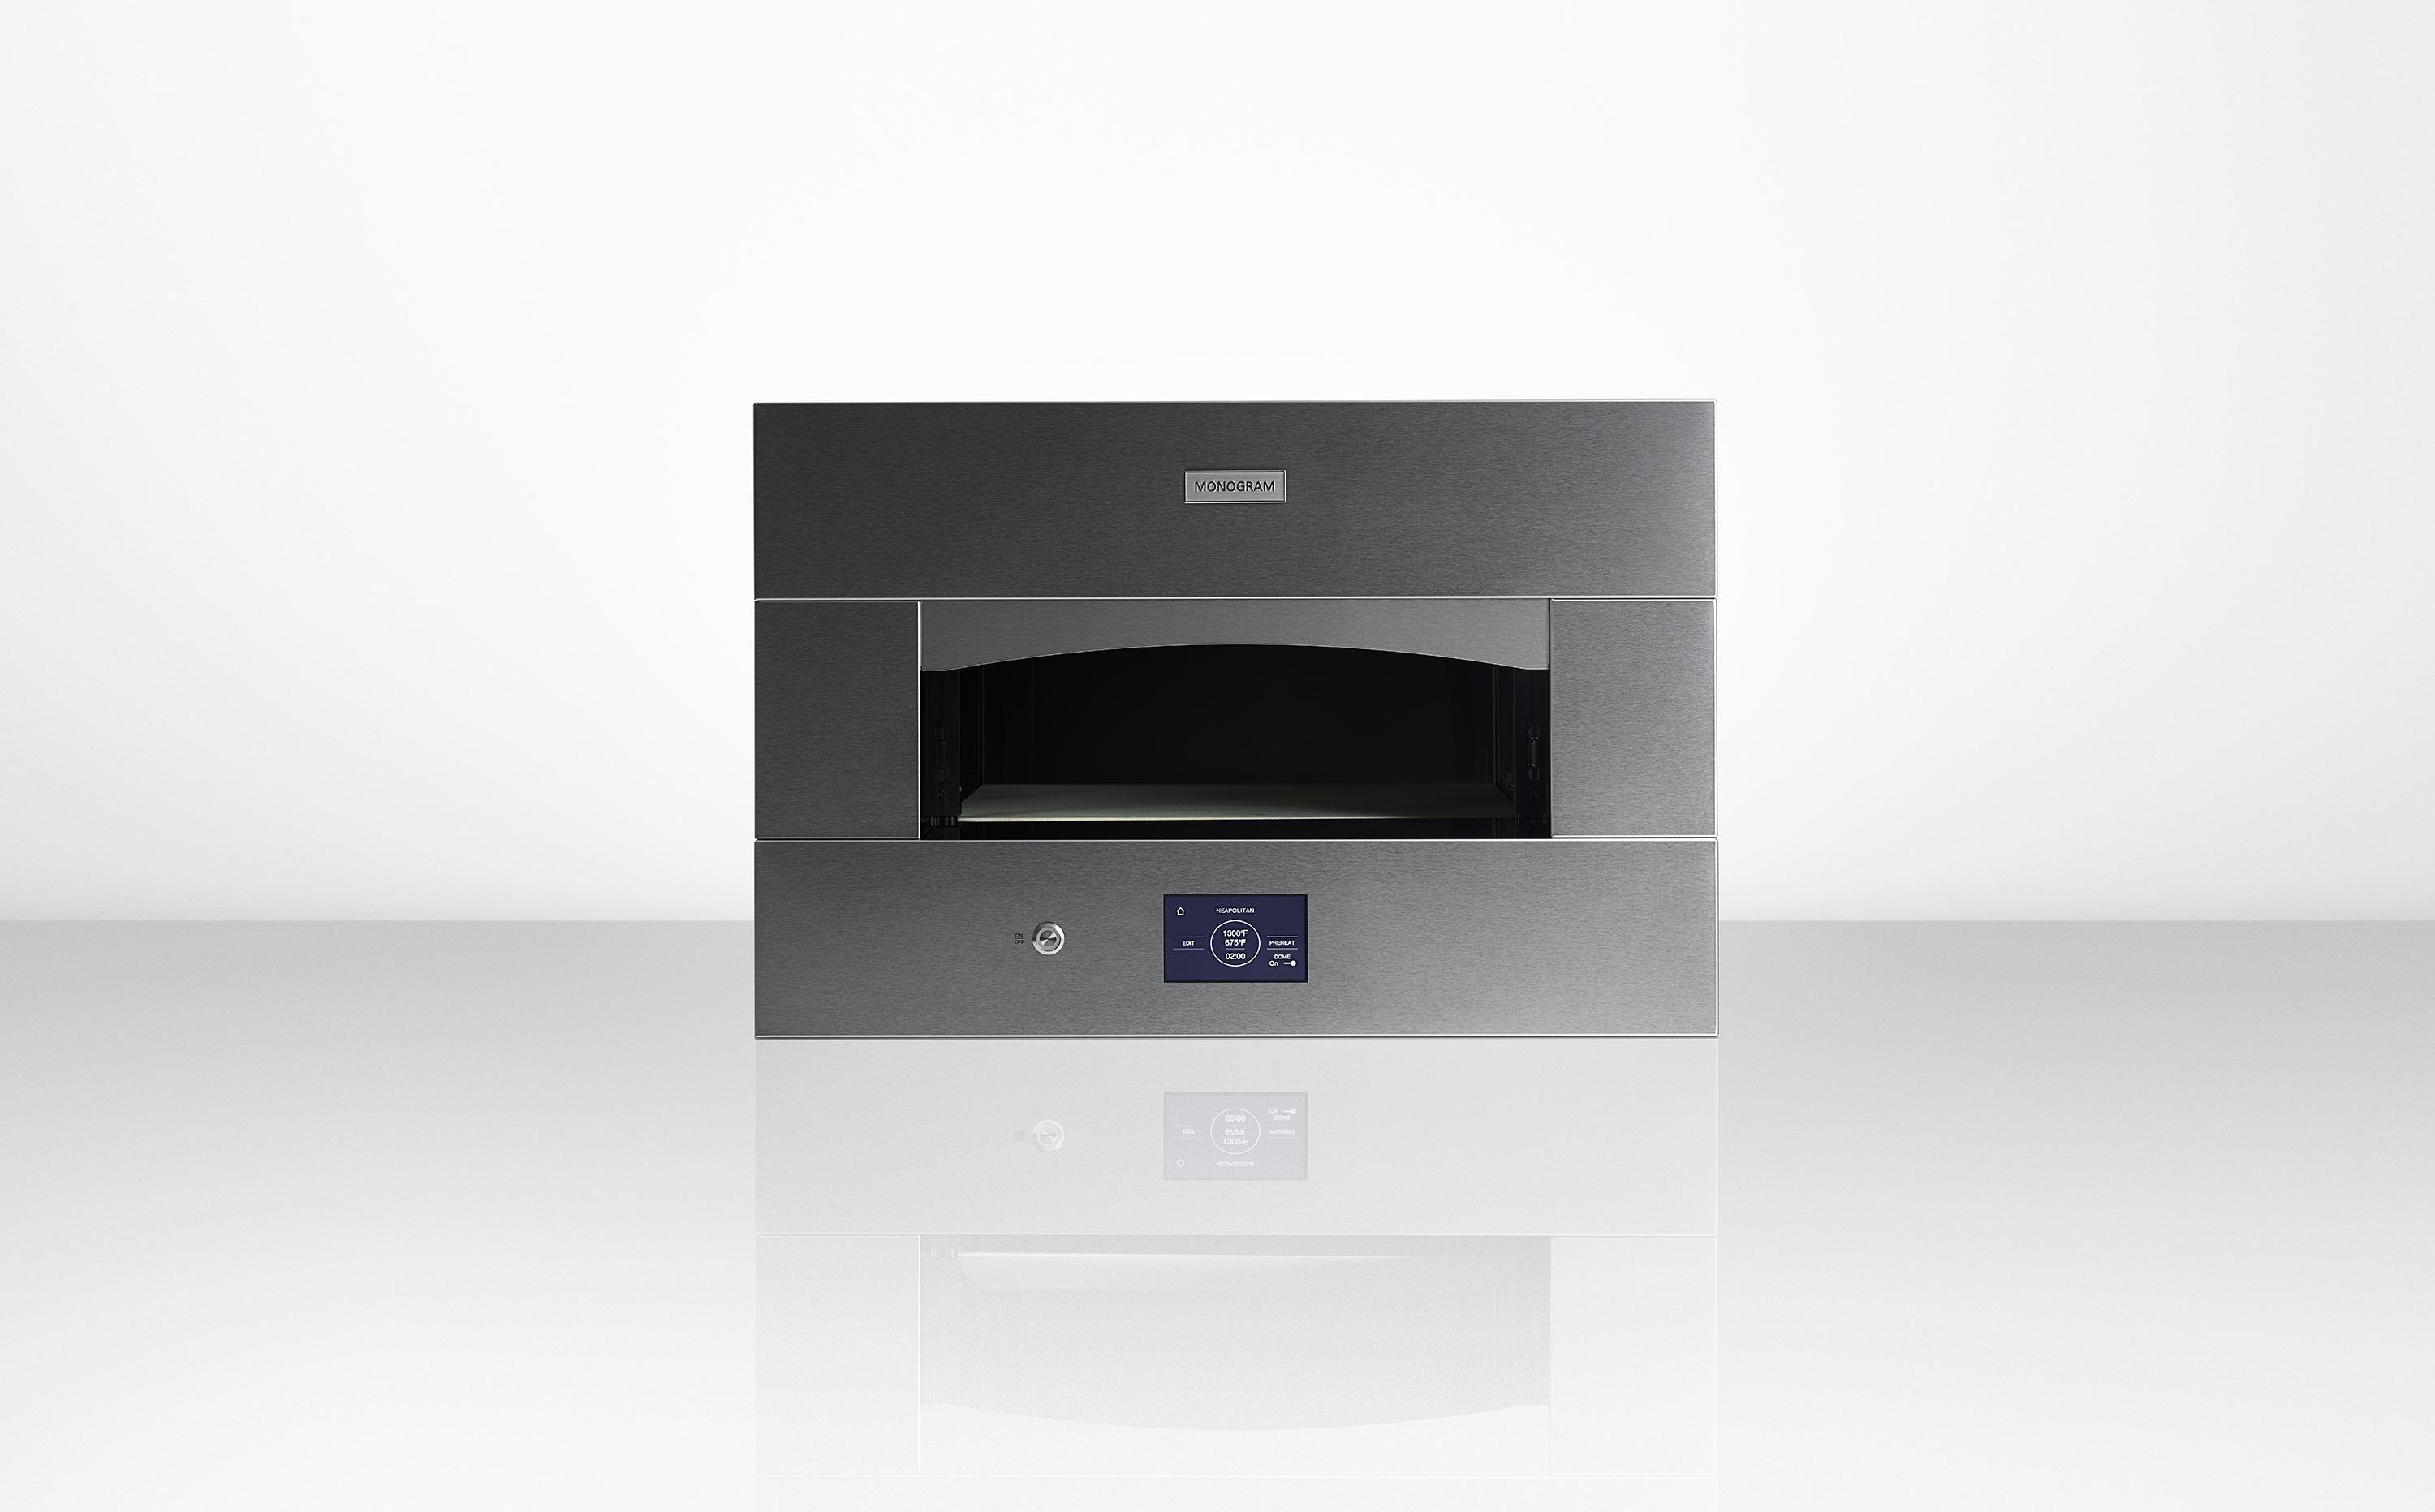 Monogram 174 Hearth Oven Adds Sophisticated Flavor To Luxury